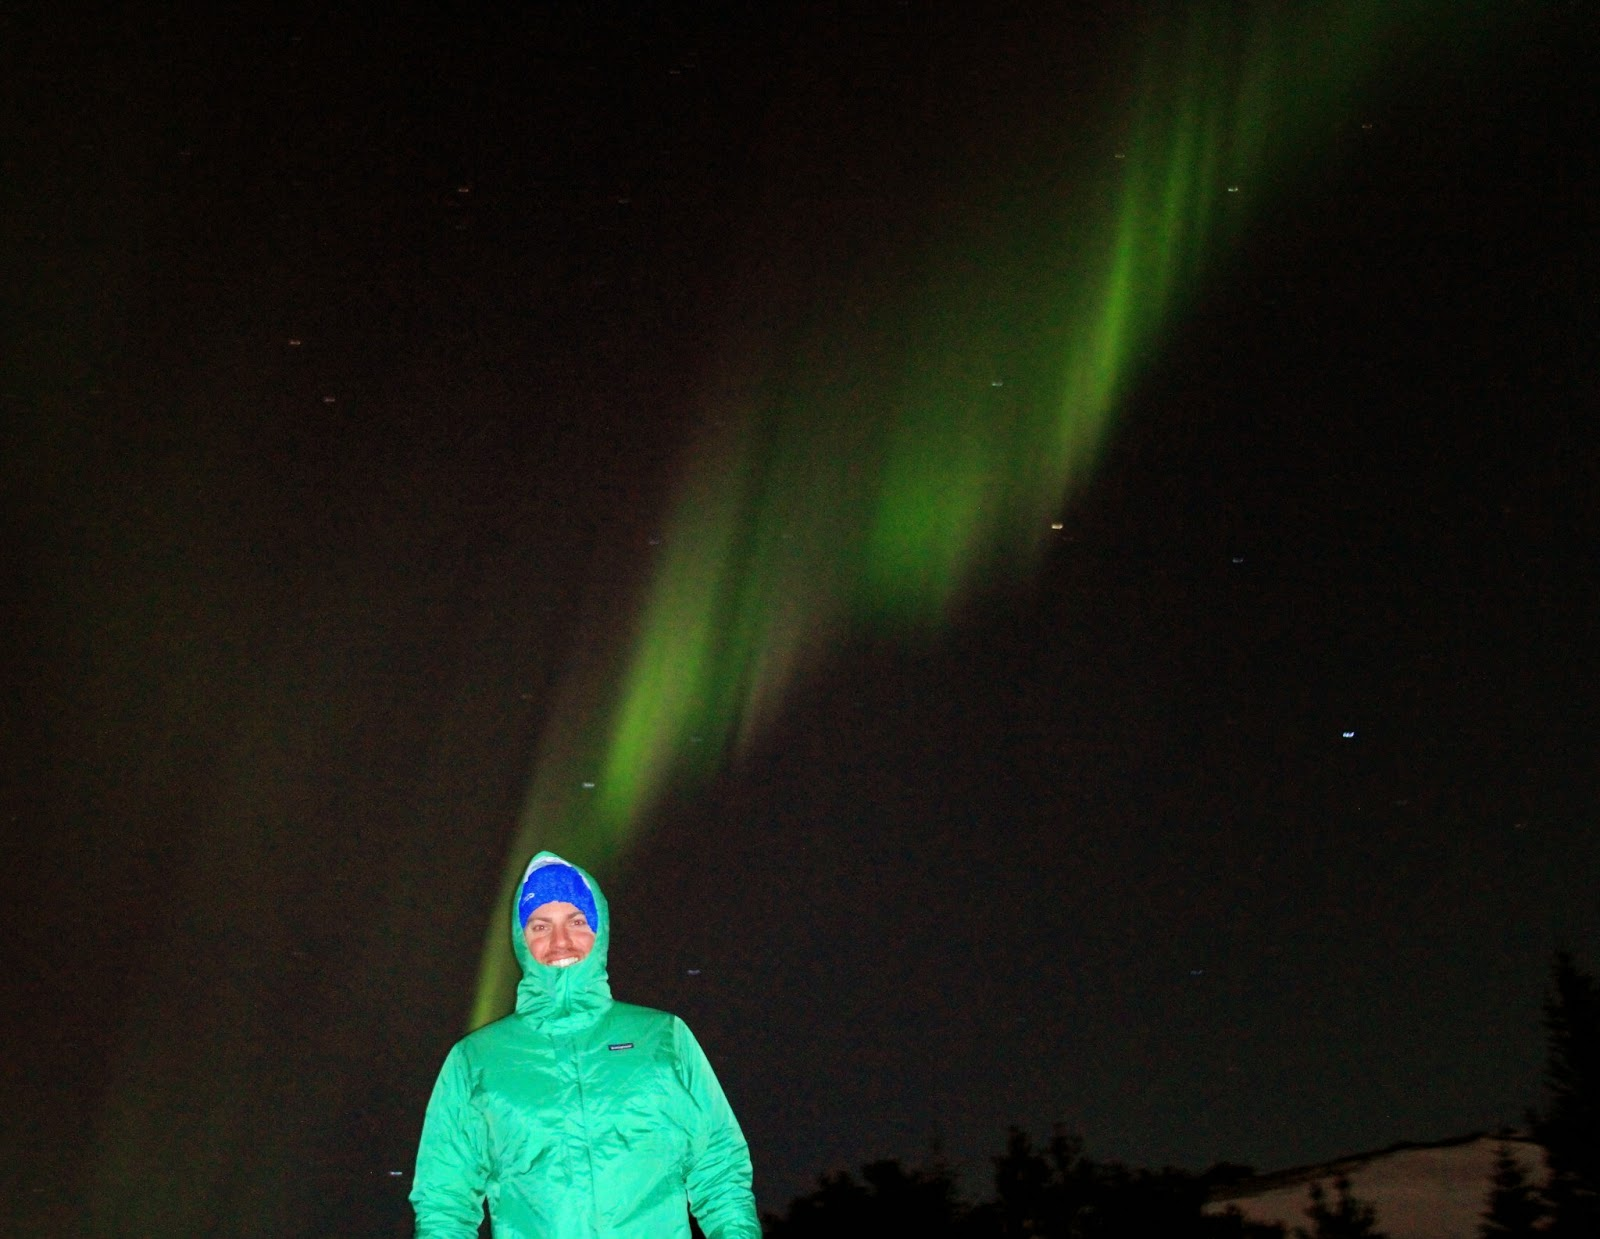 Wrapped up warm watching the Northern Lights - Reykjavik, Iceland